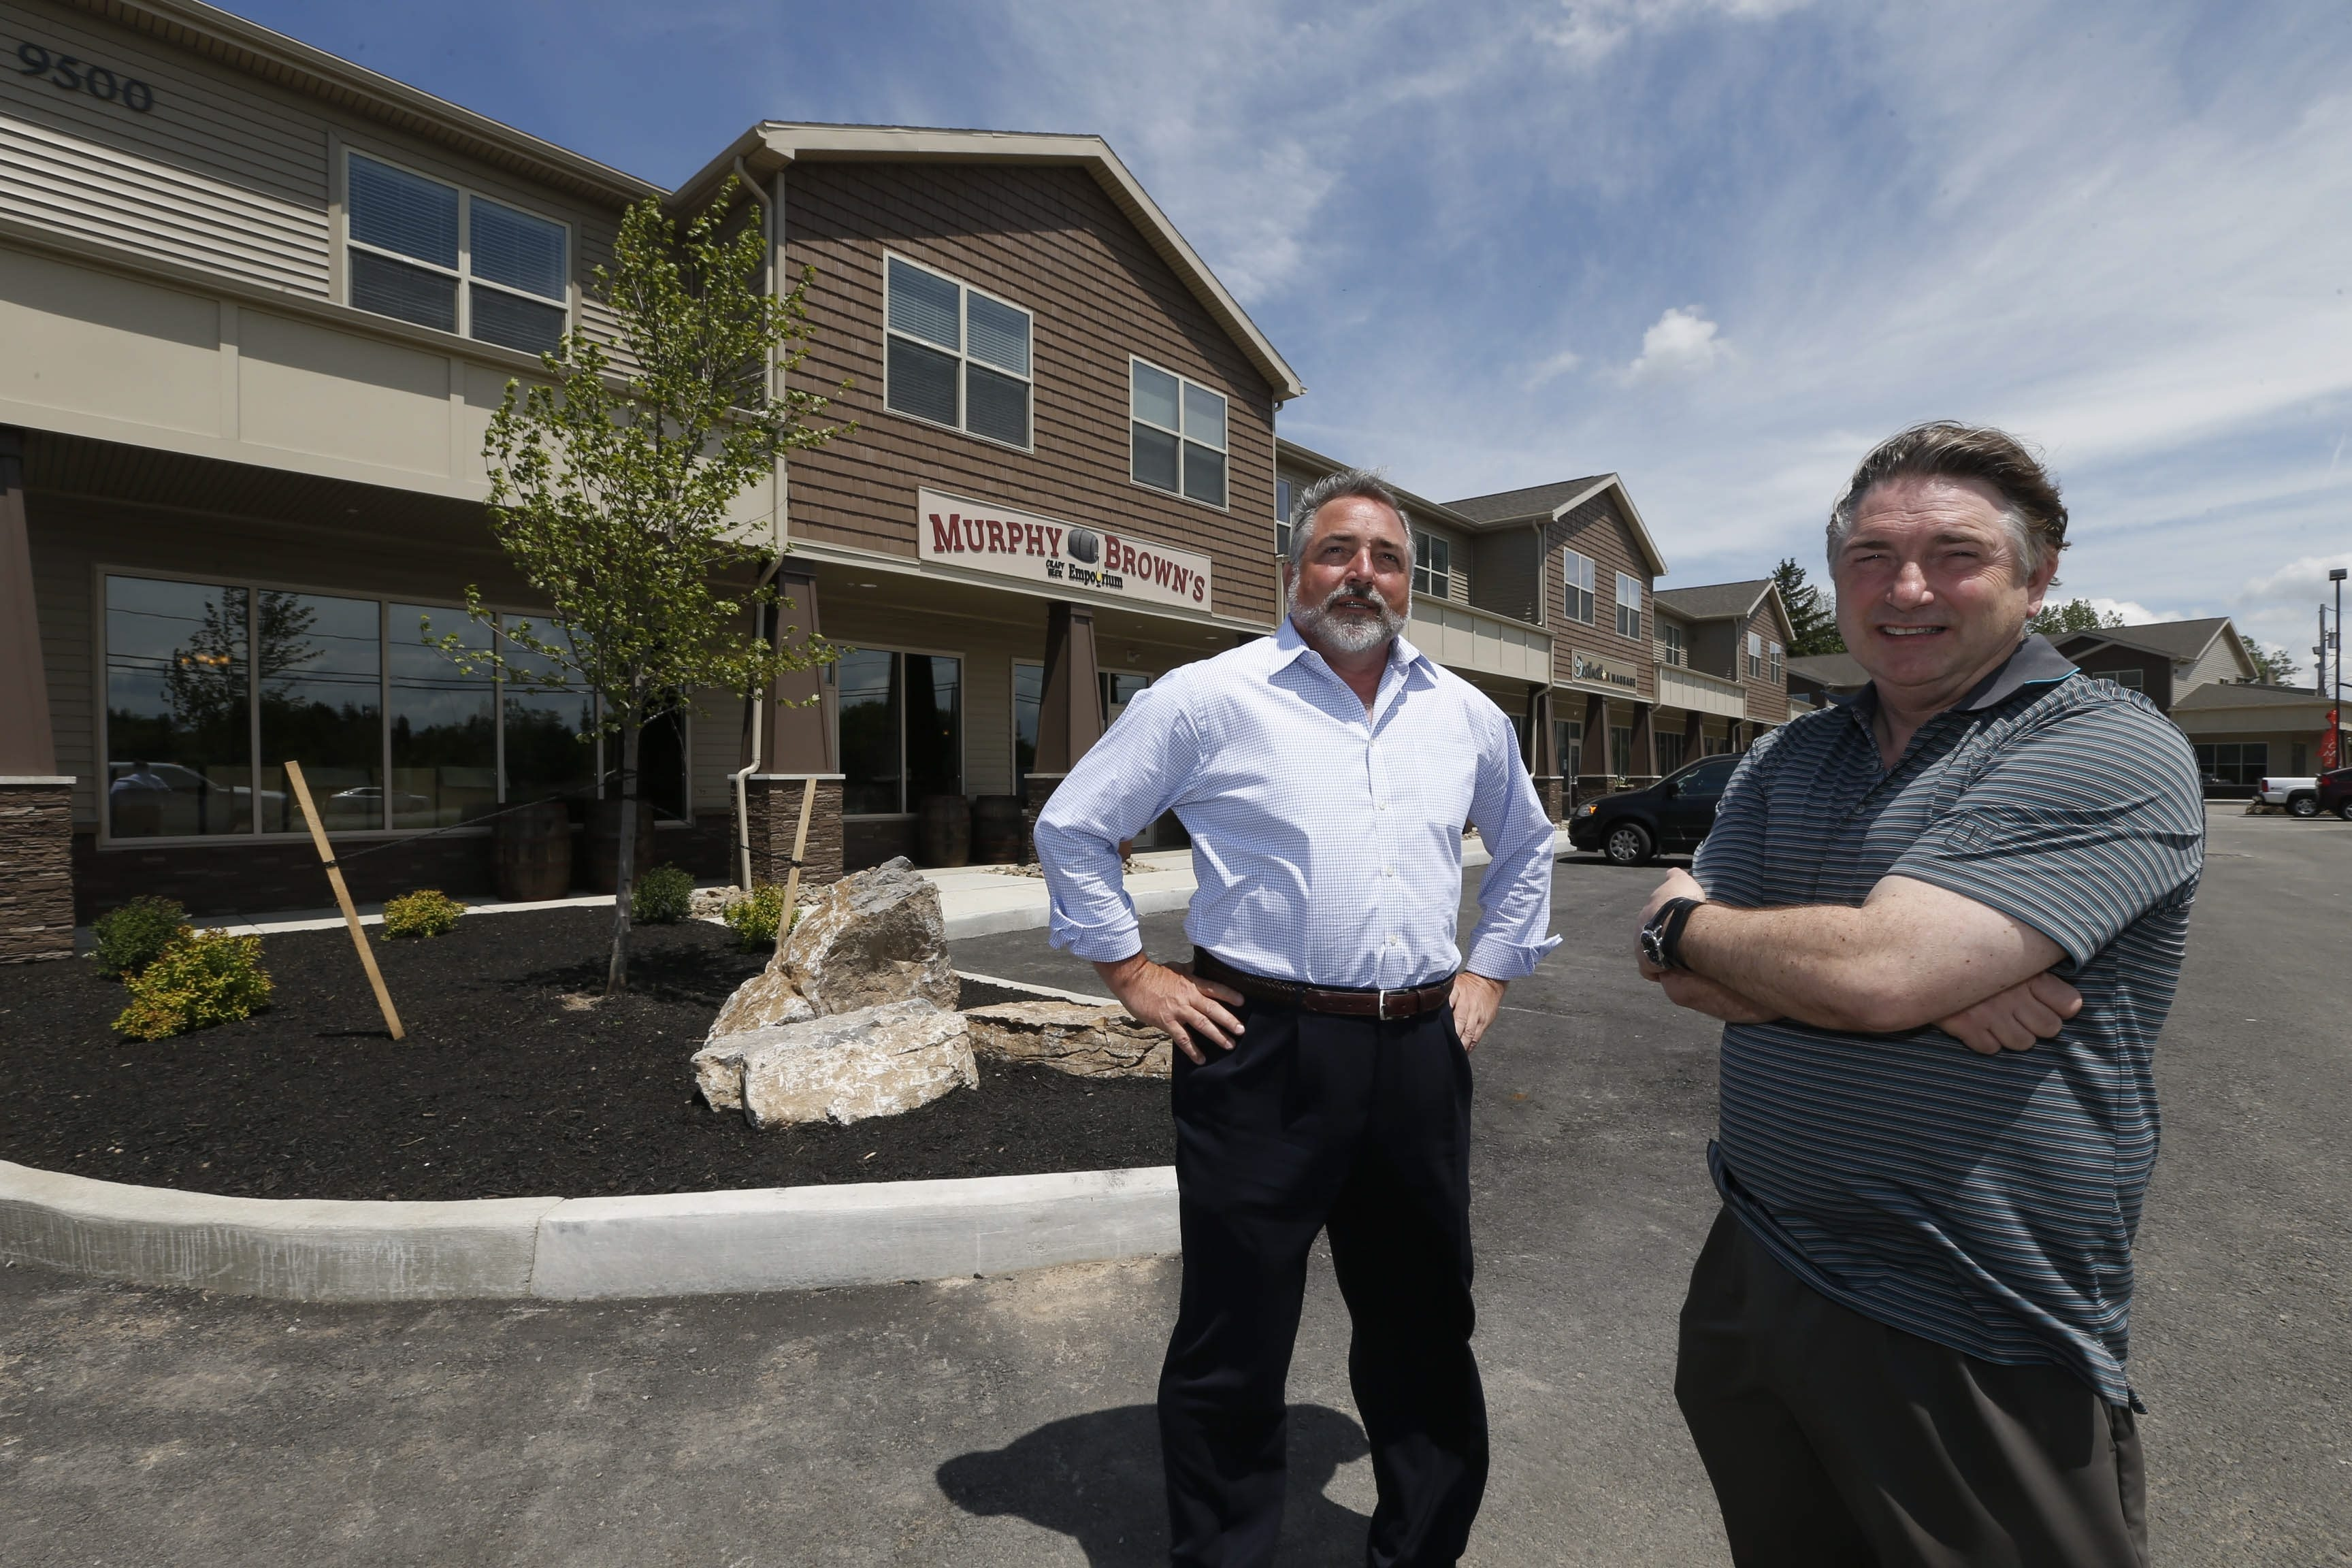 Jim, left, and Paul Stephen, development partners, outside their latest project at Main and Goodrich in Clarence.